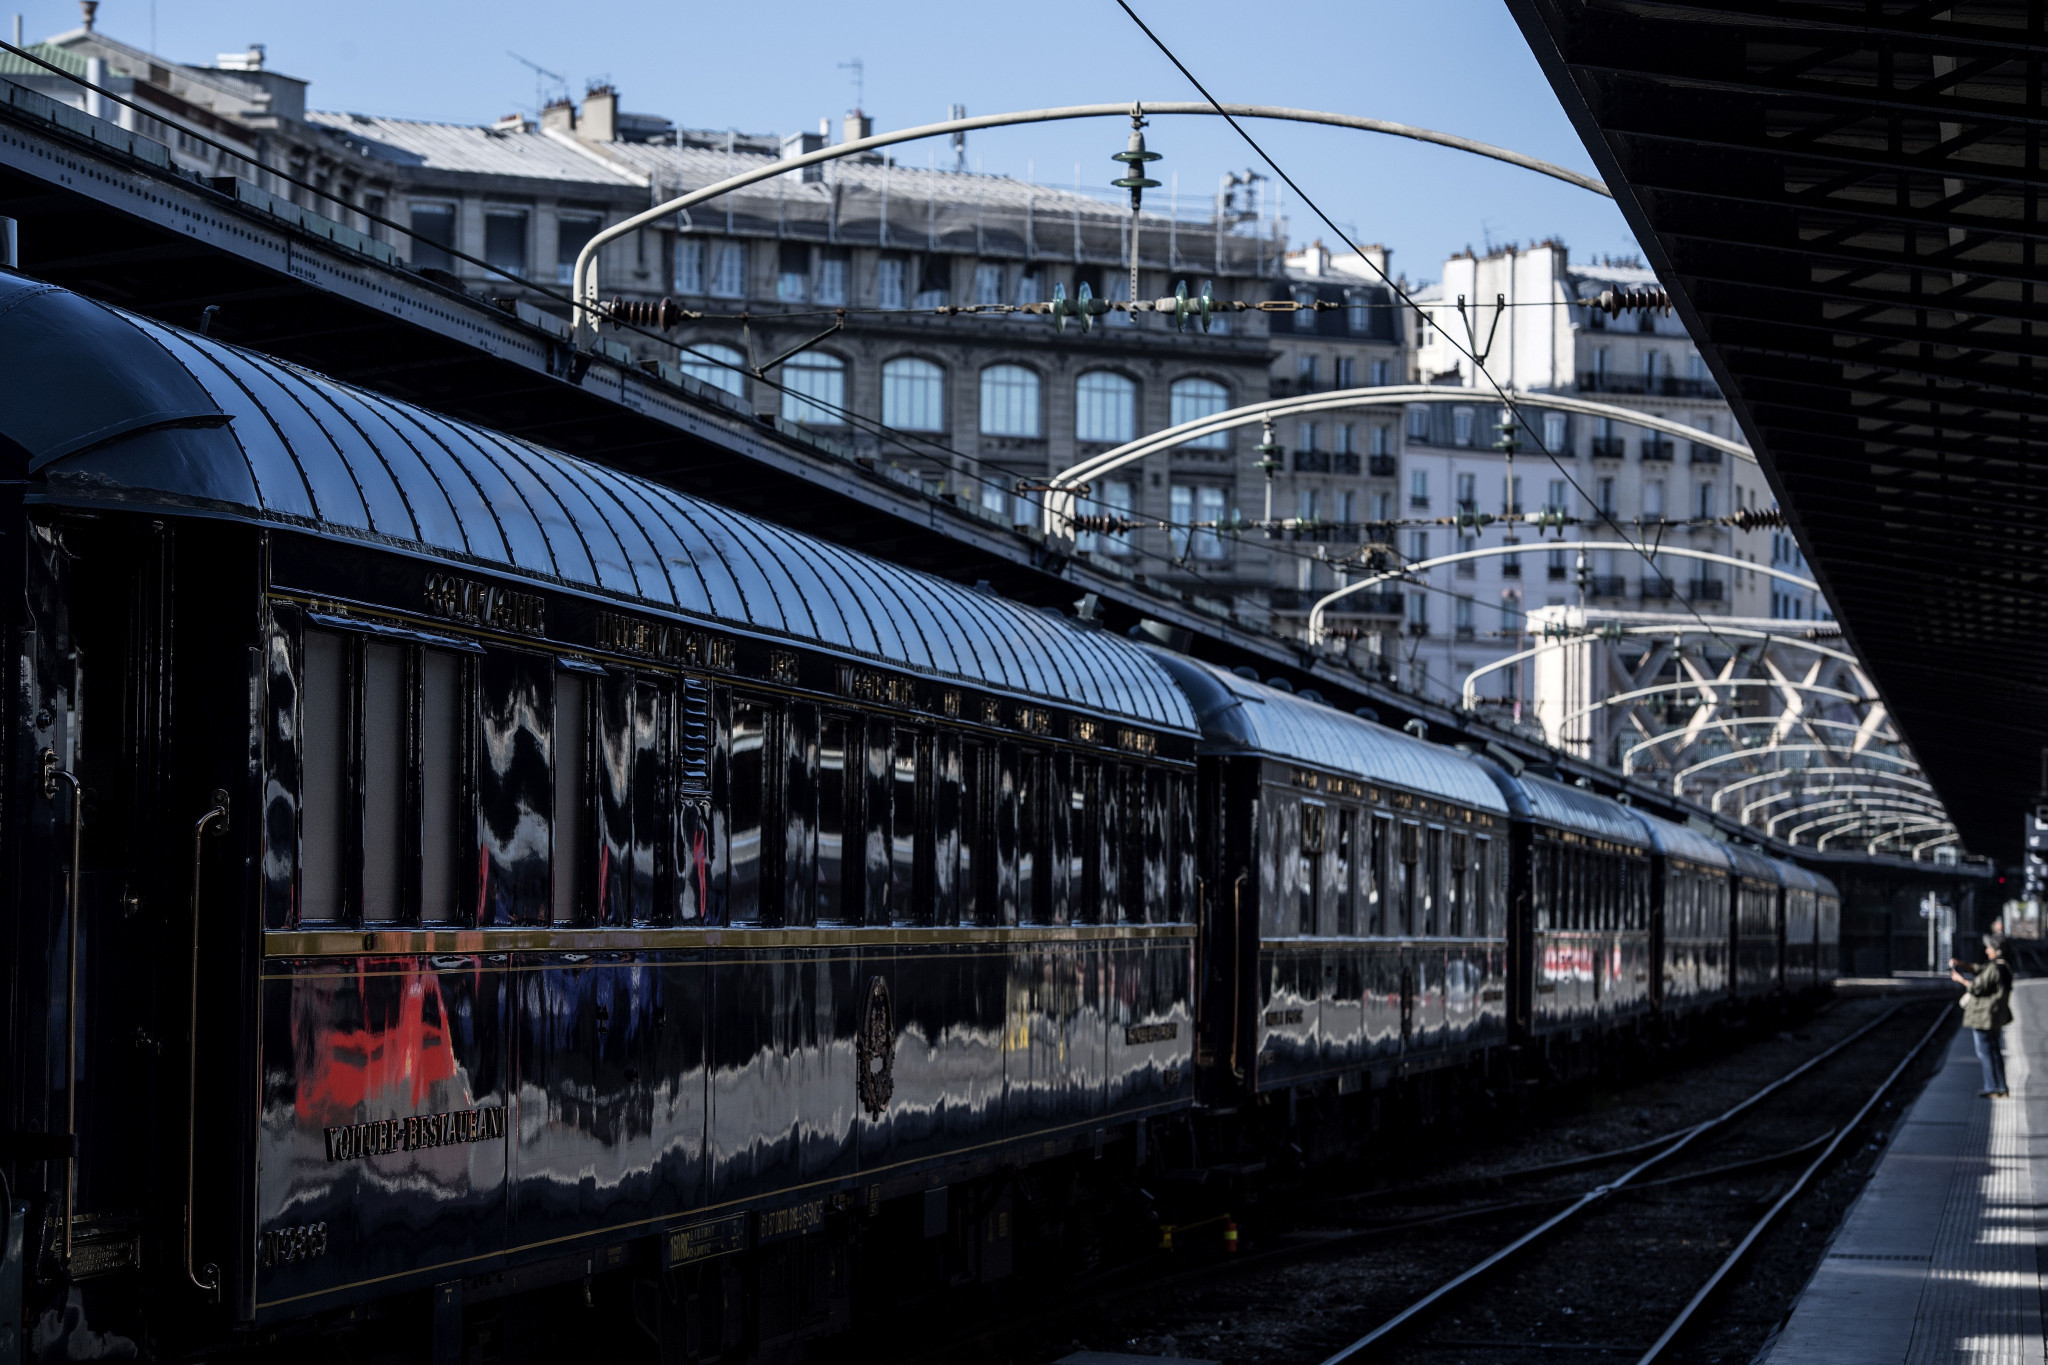 A railway line is set to link Charles de Gaulle Airport and Gare de l'Est, pictured, for the Paris 2024 Olympic and Paralympic Games, but doubts over its commissioning have been raised ©Getty Images